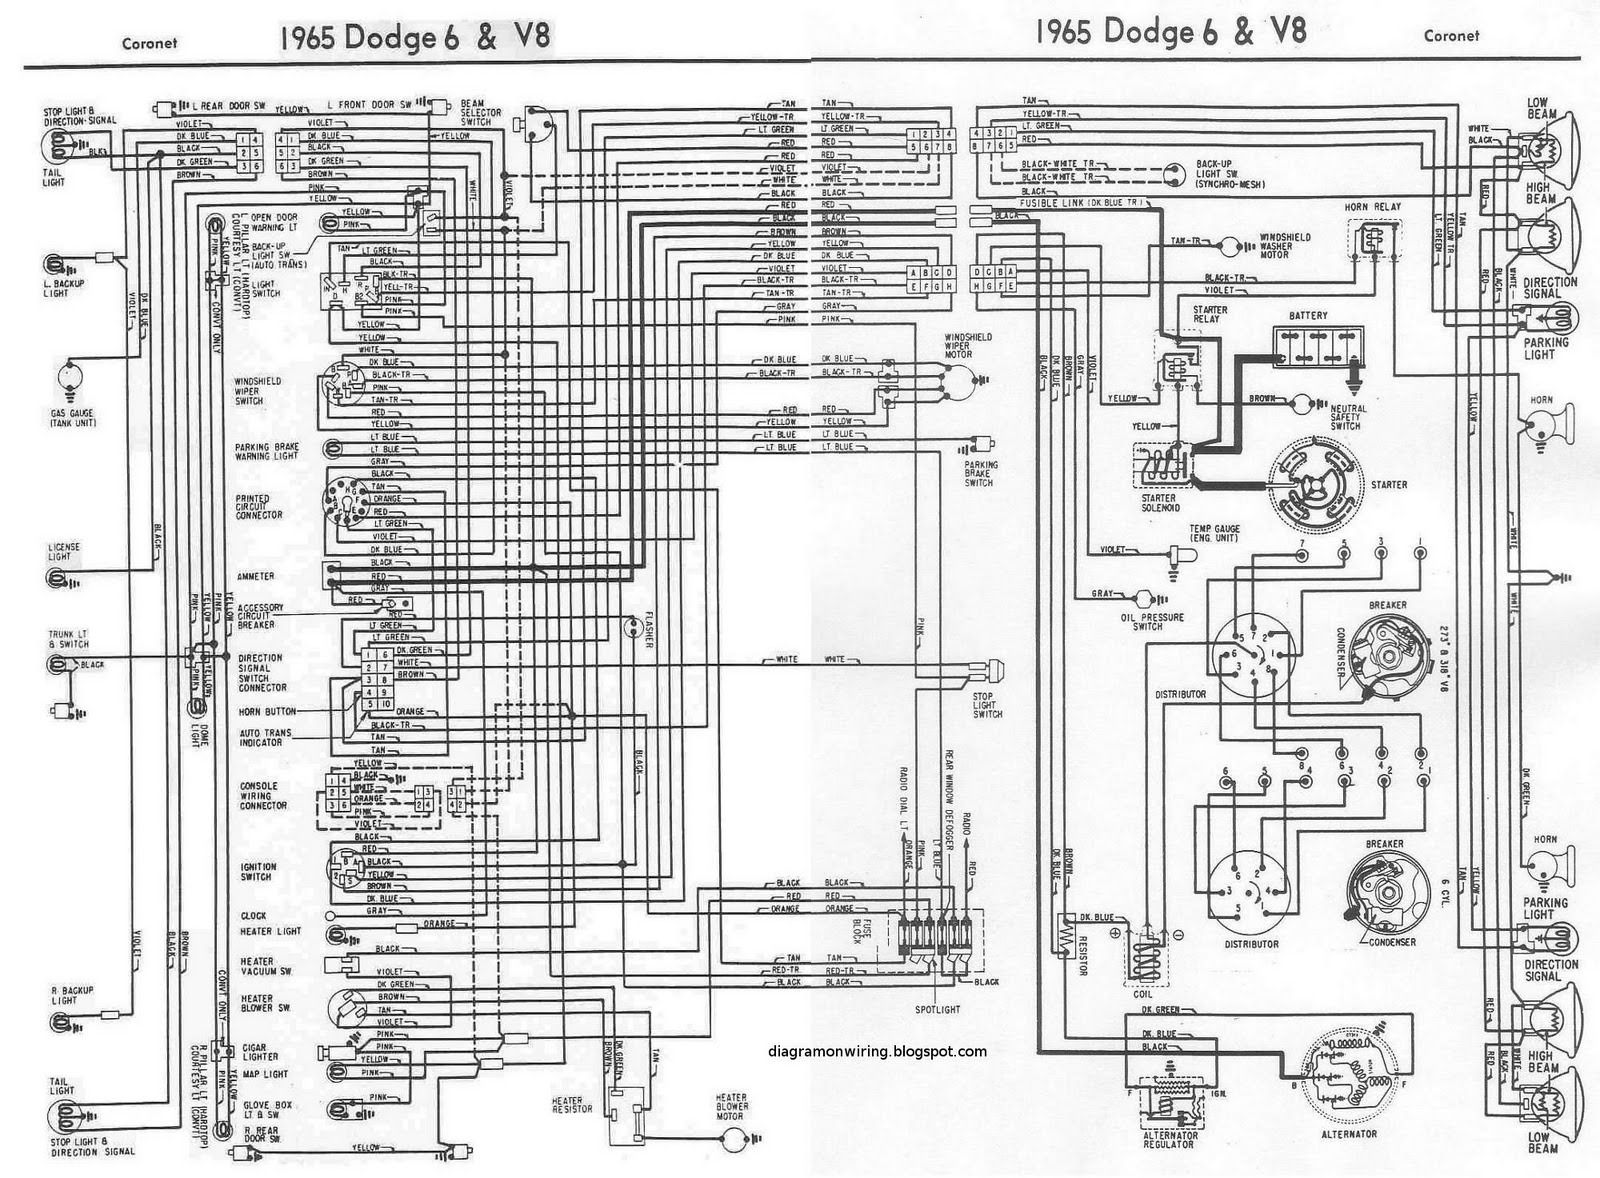 dodge 6 and v8 coronet 1965 complete wiring diagram all. Black Bedroom Furniture Sets. Home Design Ideas